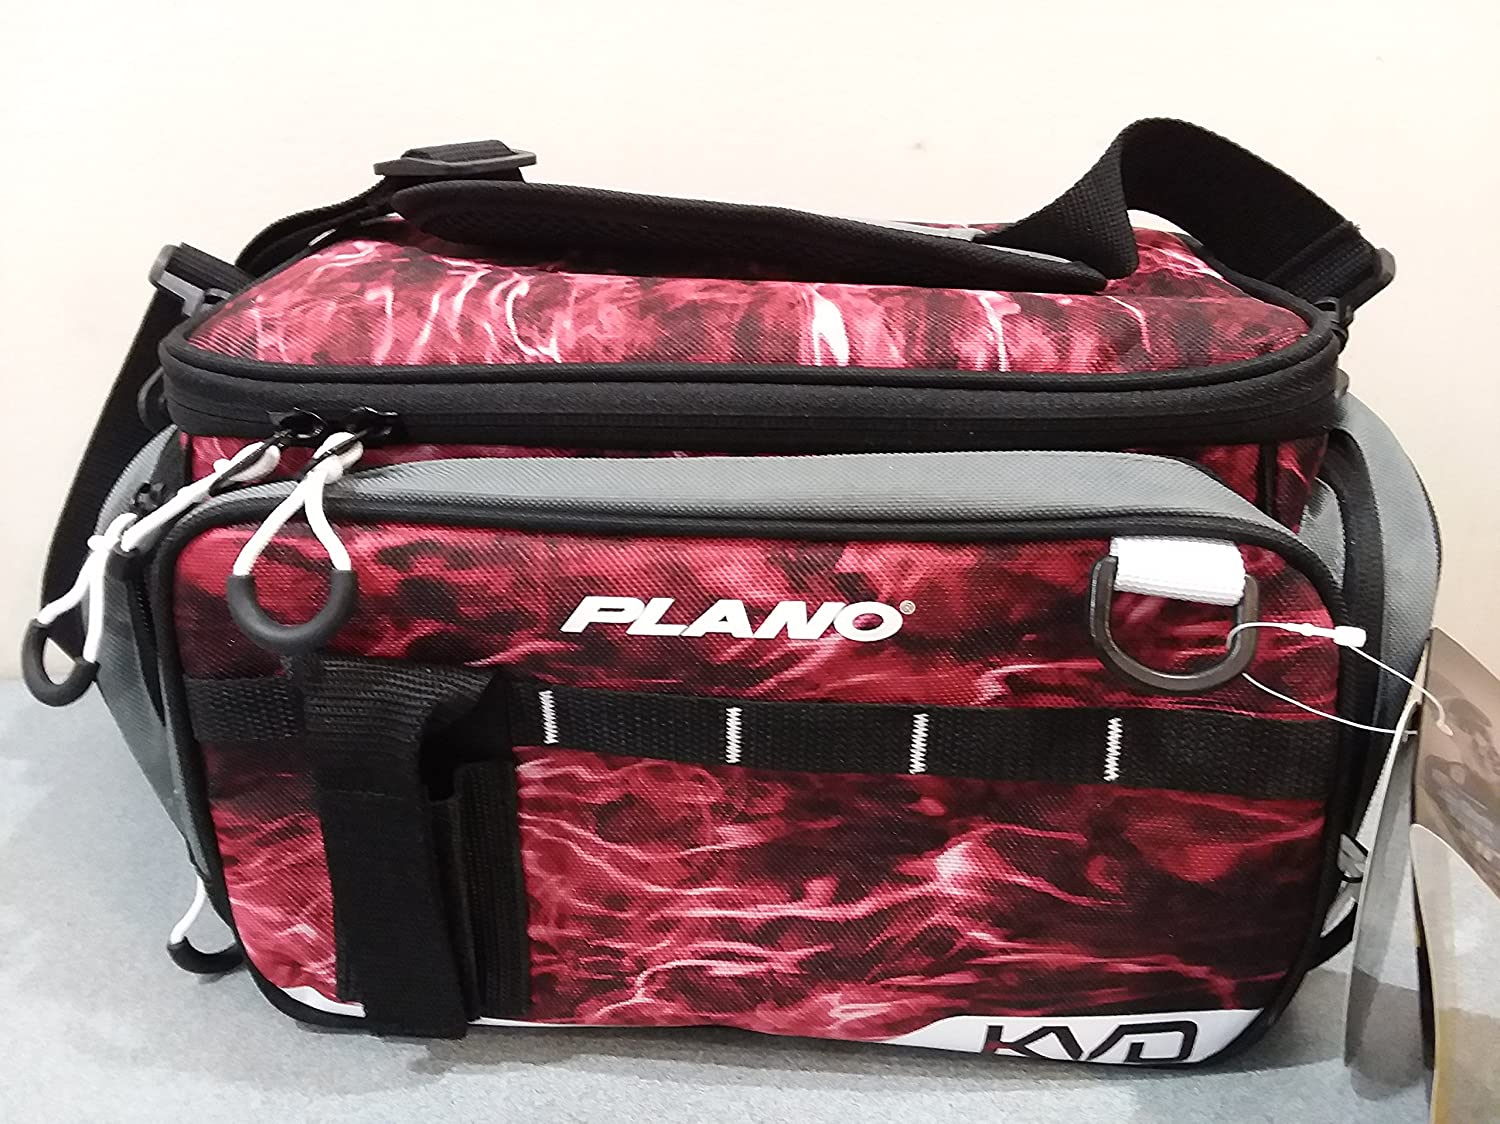 KVD Plano Soft sided Tackle Bag 3600 Series Weekend Fishing Box